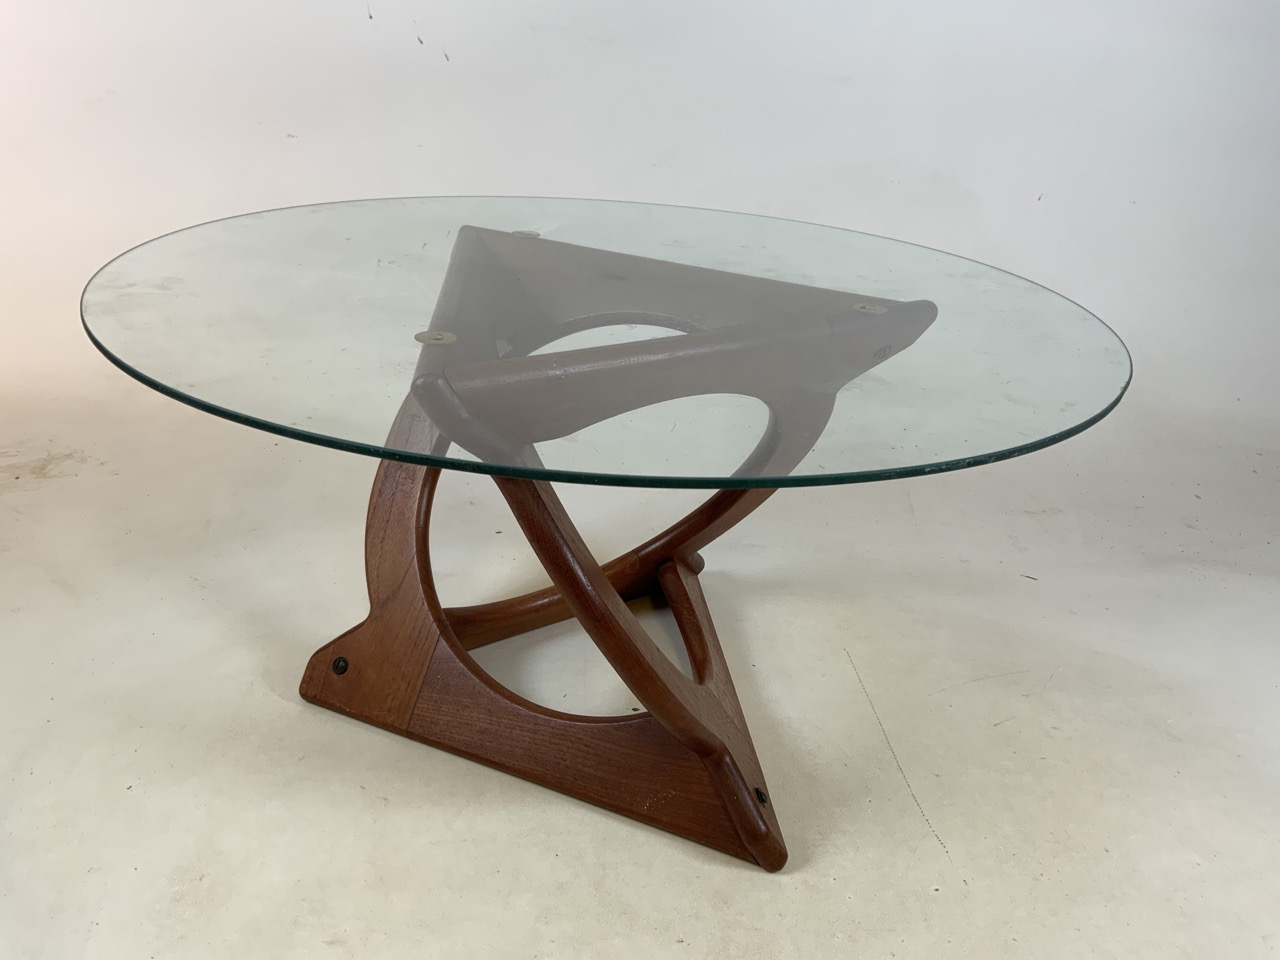 A Danish Glass top coffee table by Georg Jenson for Kubus. Diameter 75cm, Heoght 39cm - Image 2 of 5